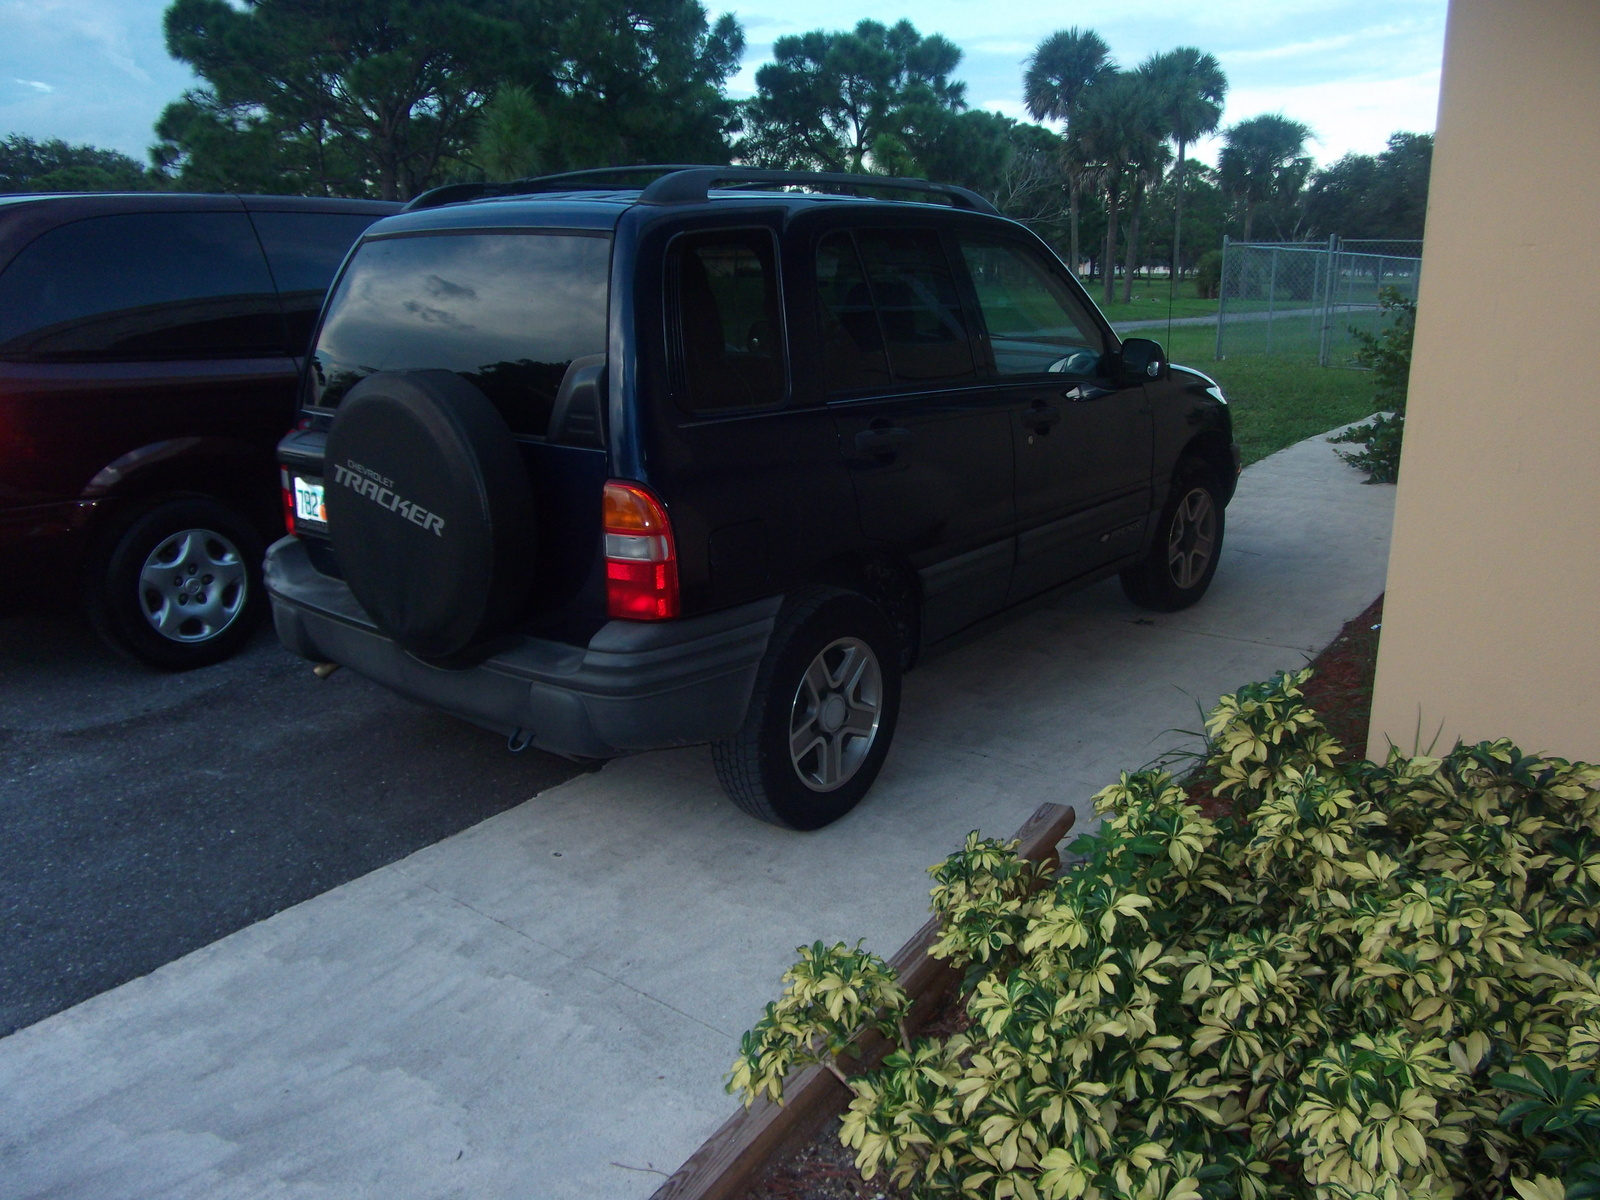 2003 Chevrolet Tracker Base picture